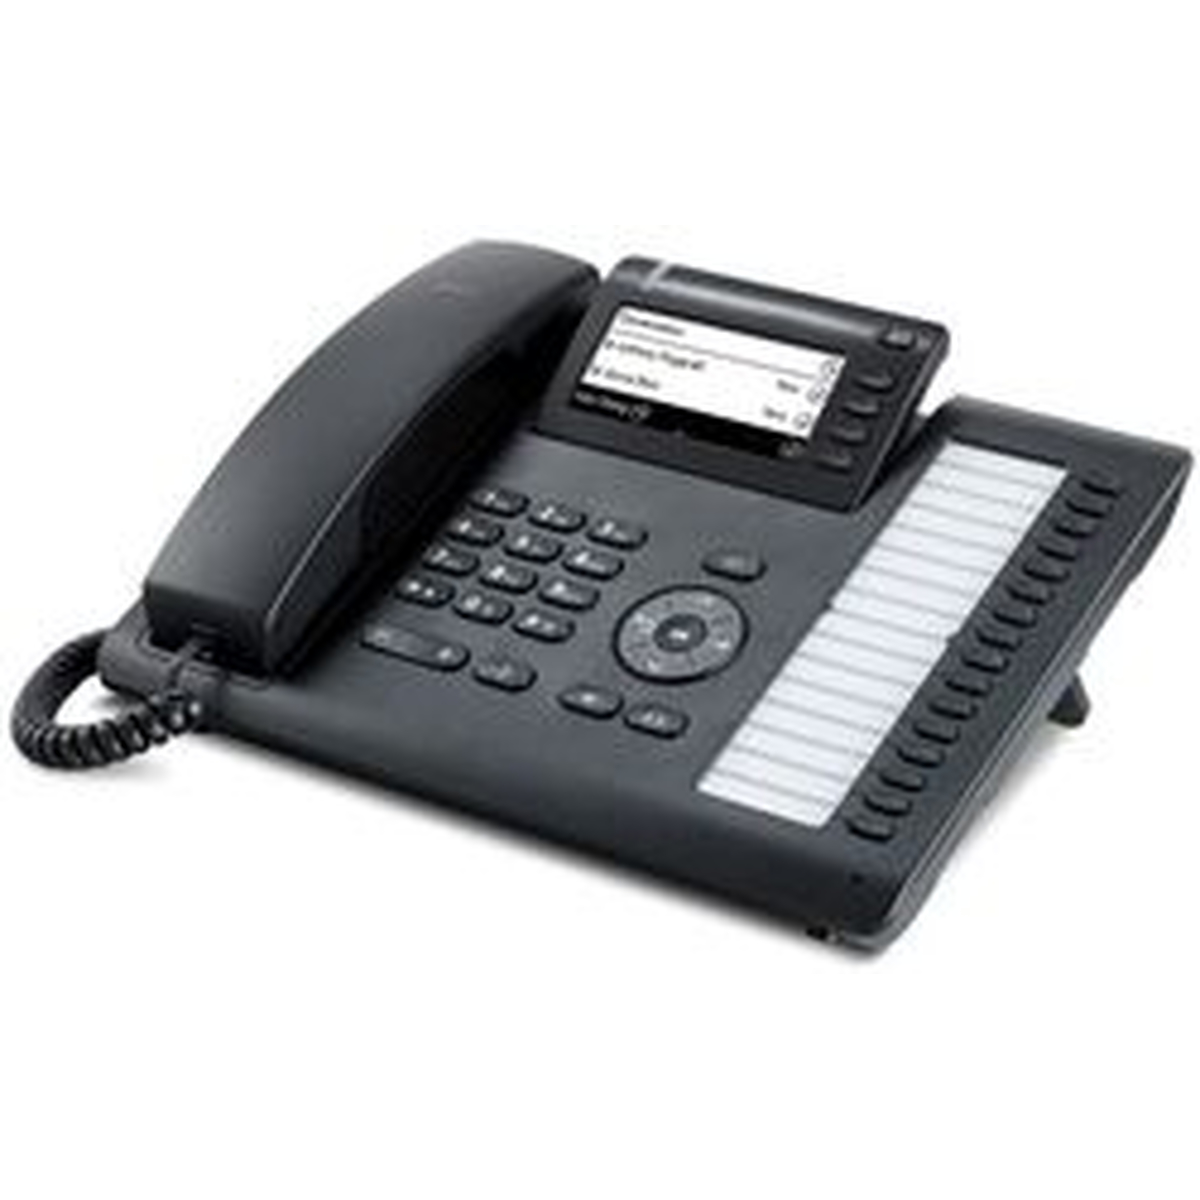 OpenScape Desk Phone CP400 CUC427